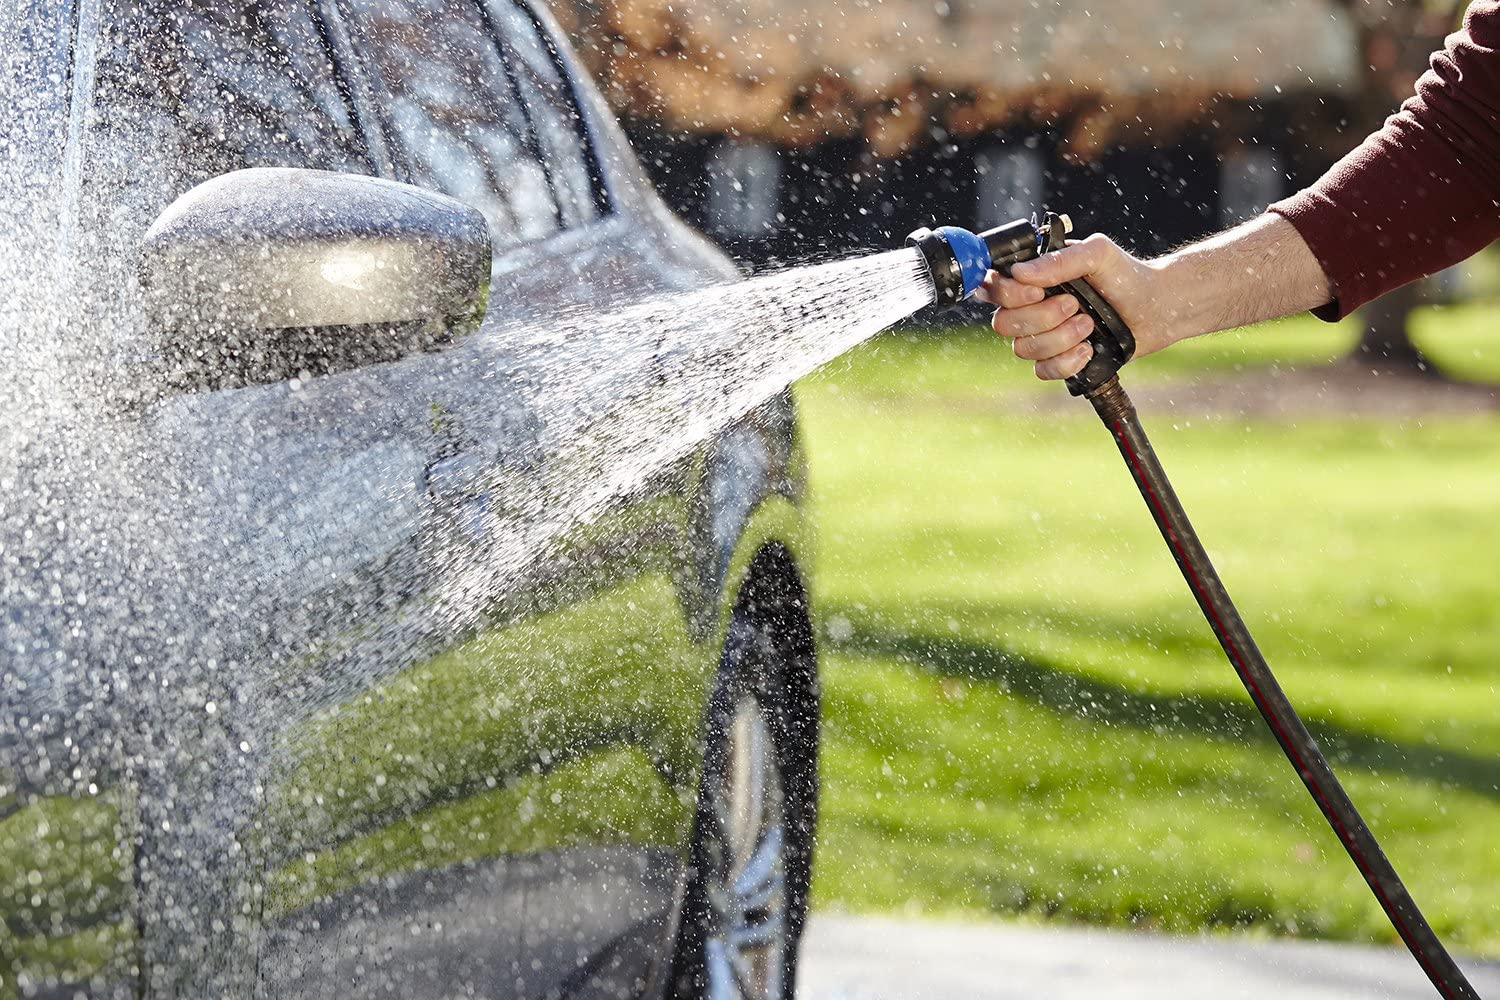 Best Hose Nozzle for Car Wash